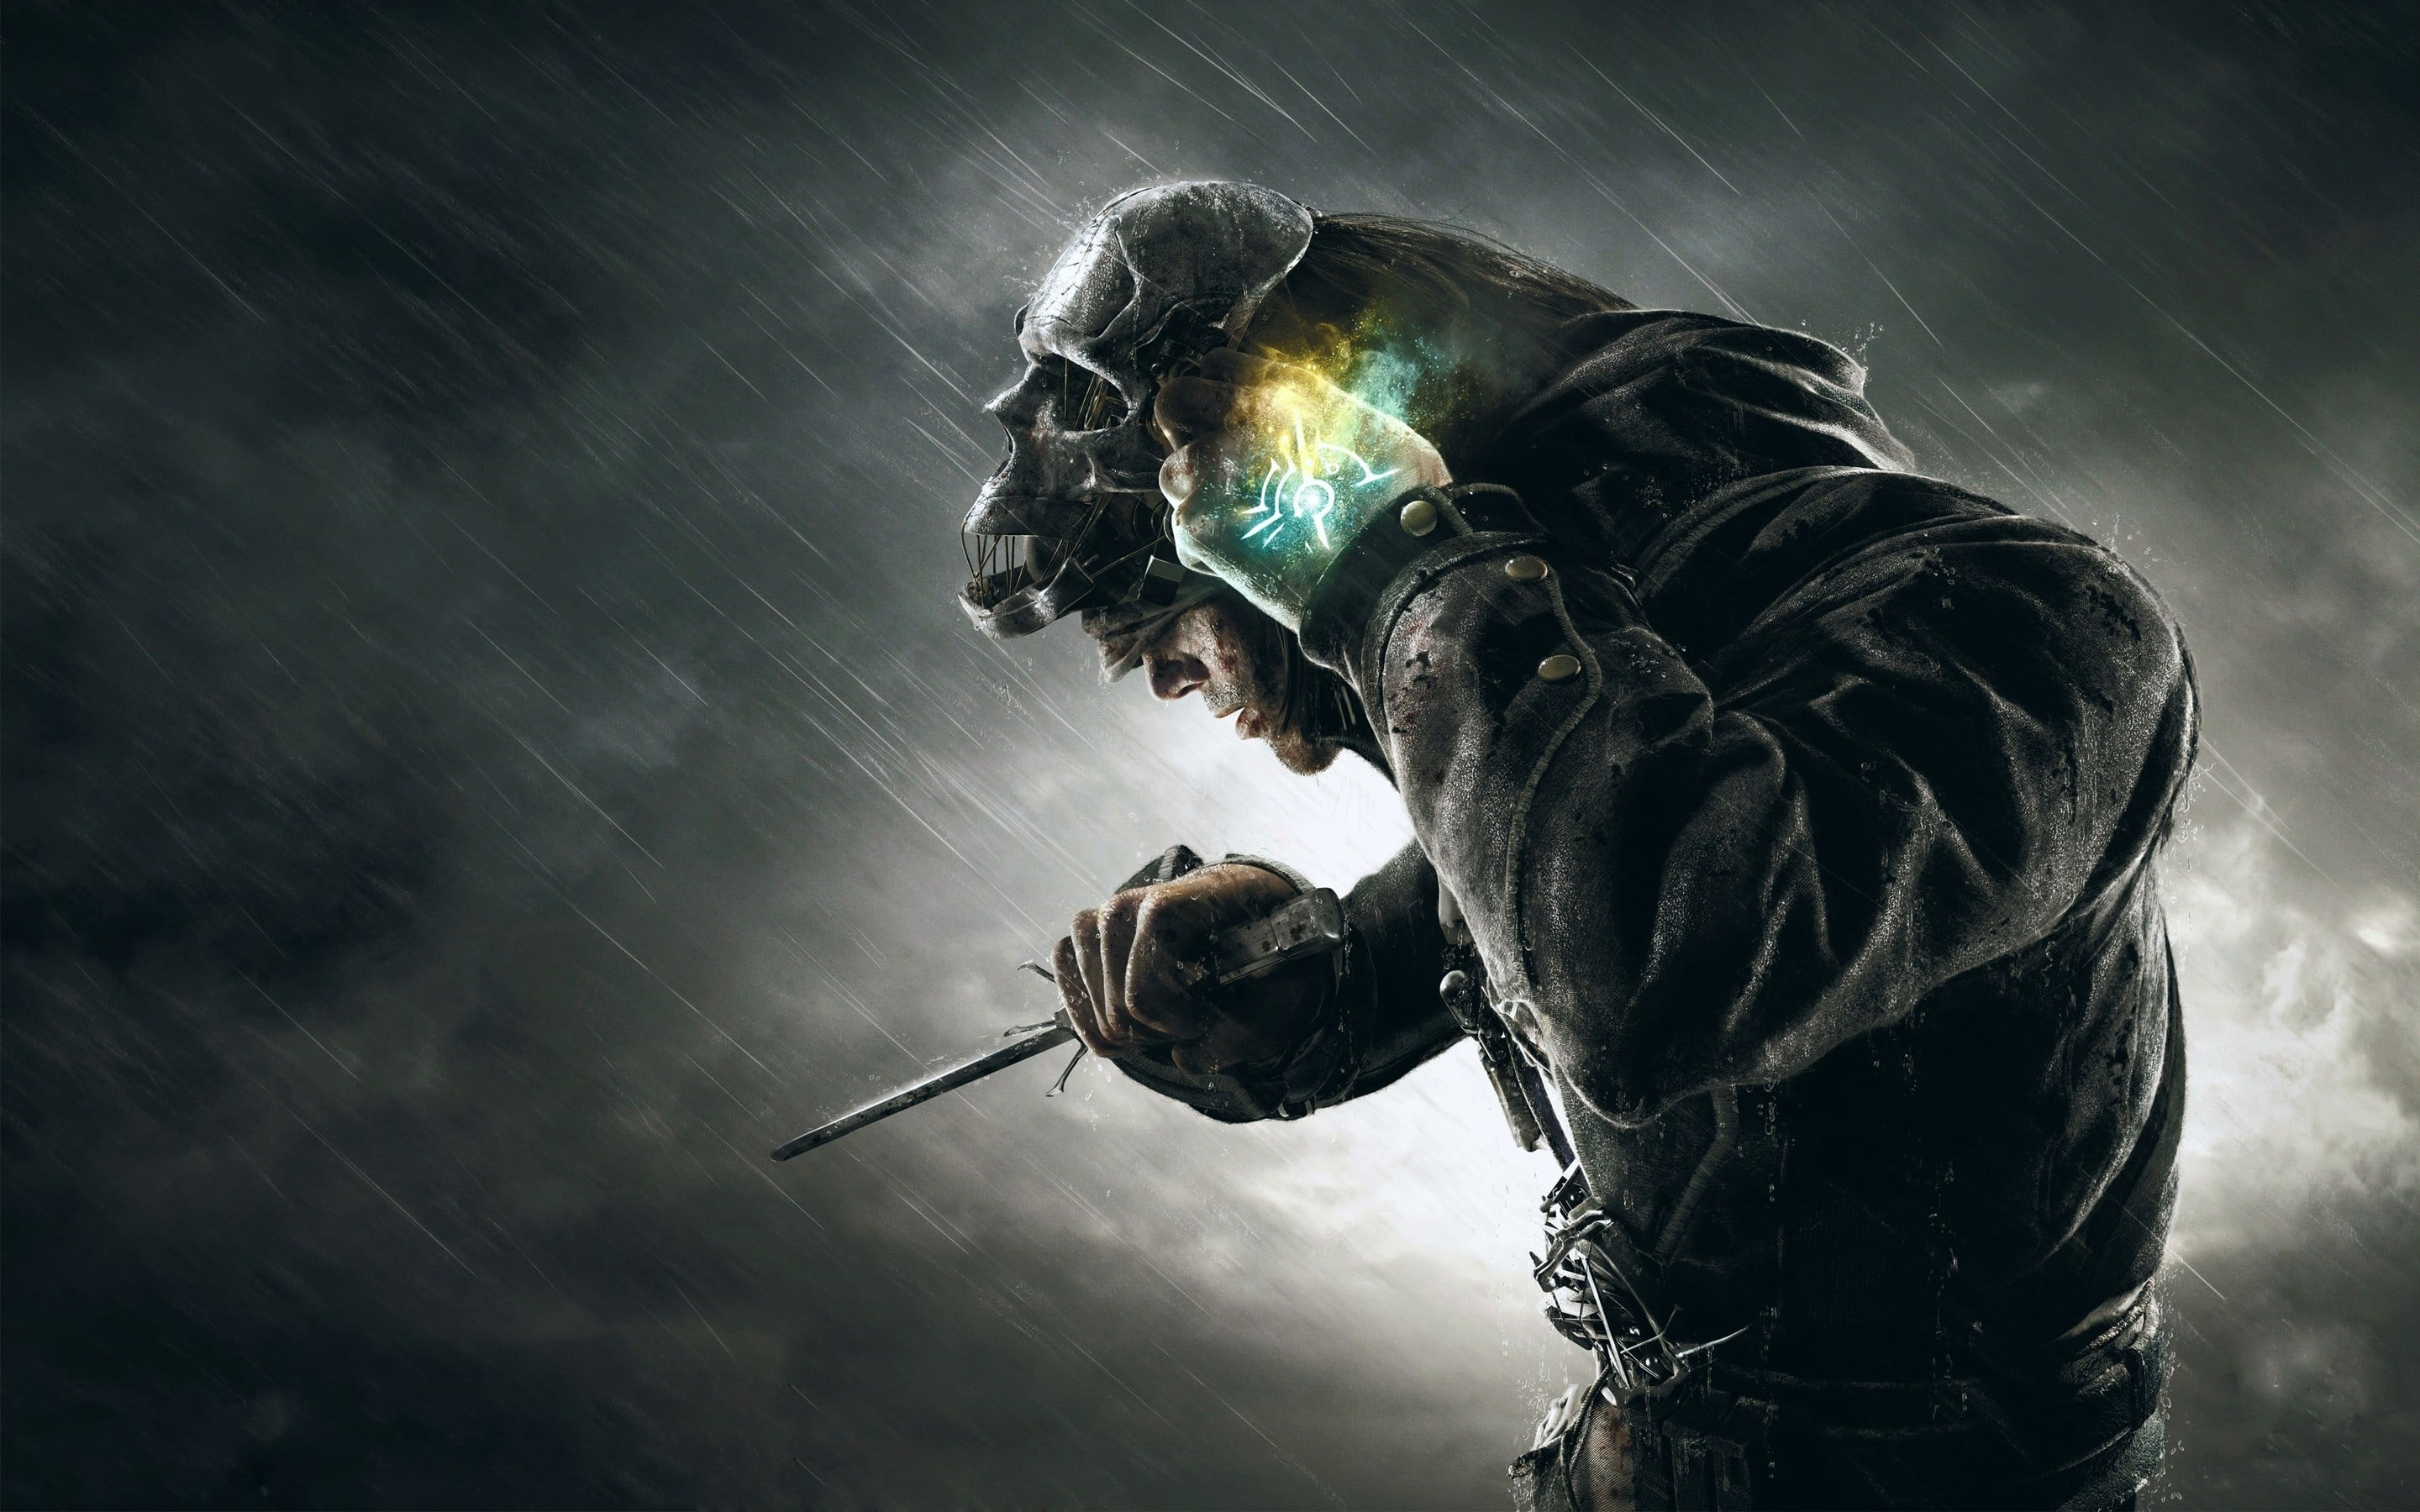 Dishonored 2 full HD image